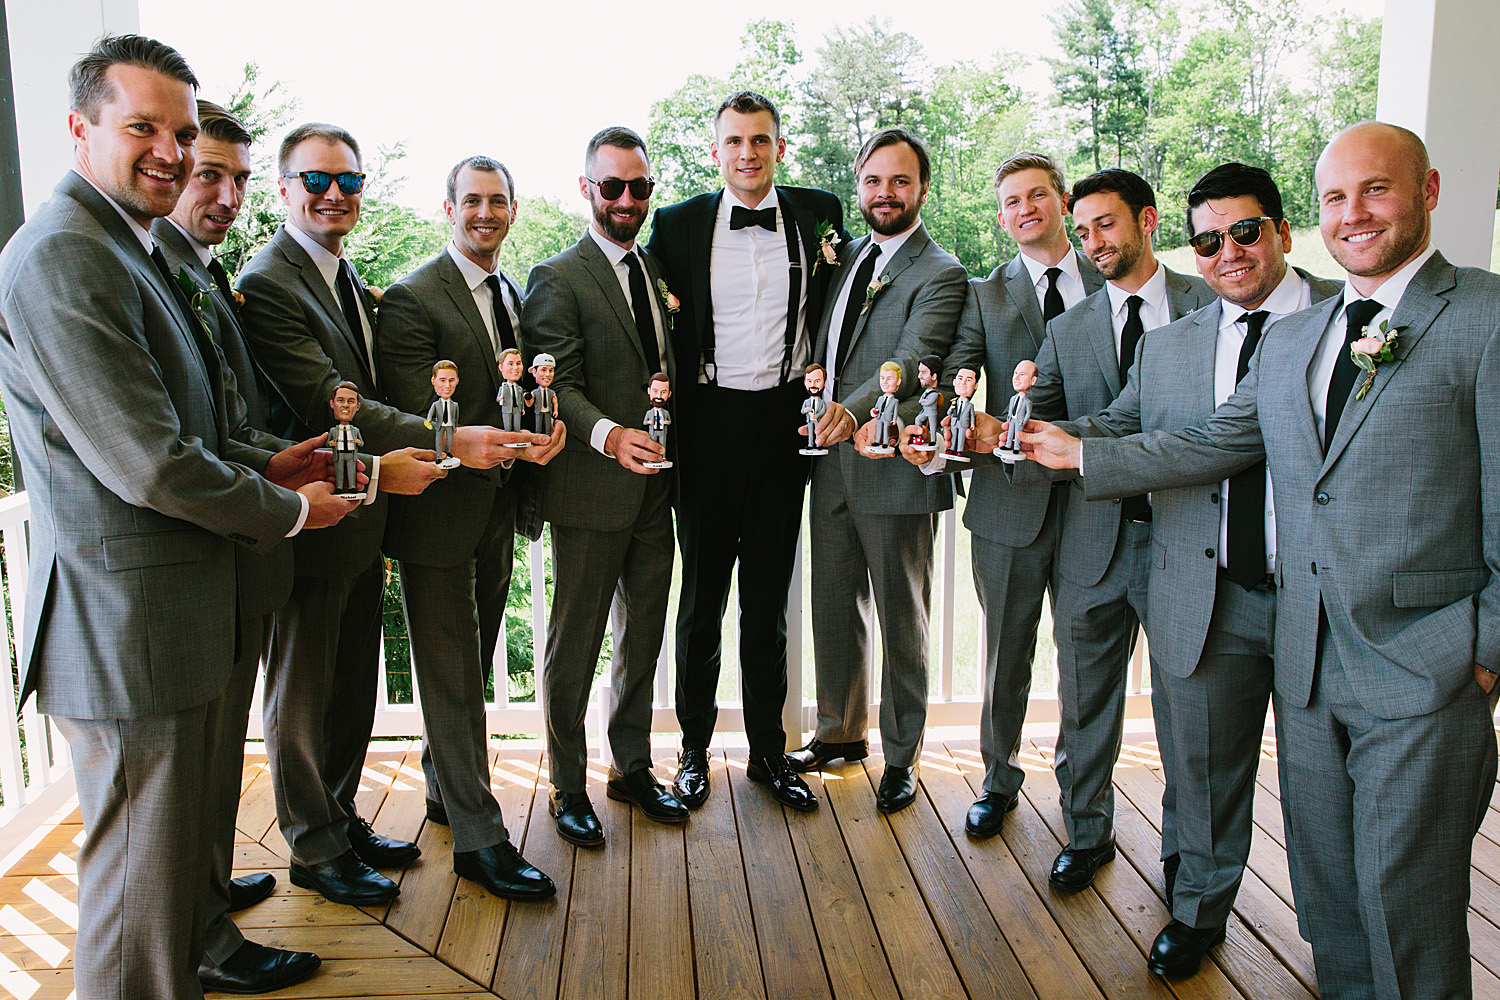 Jeremy-Russell-Asheville-The-Ridge-Wedding-1705-61.jpg